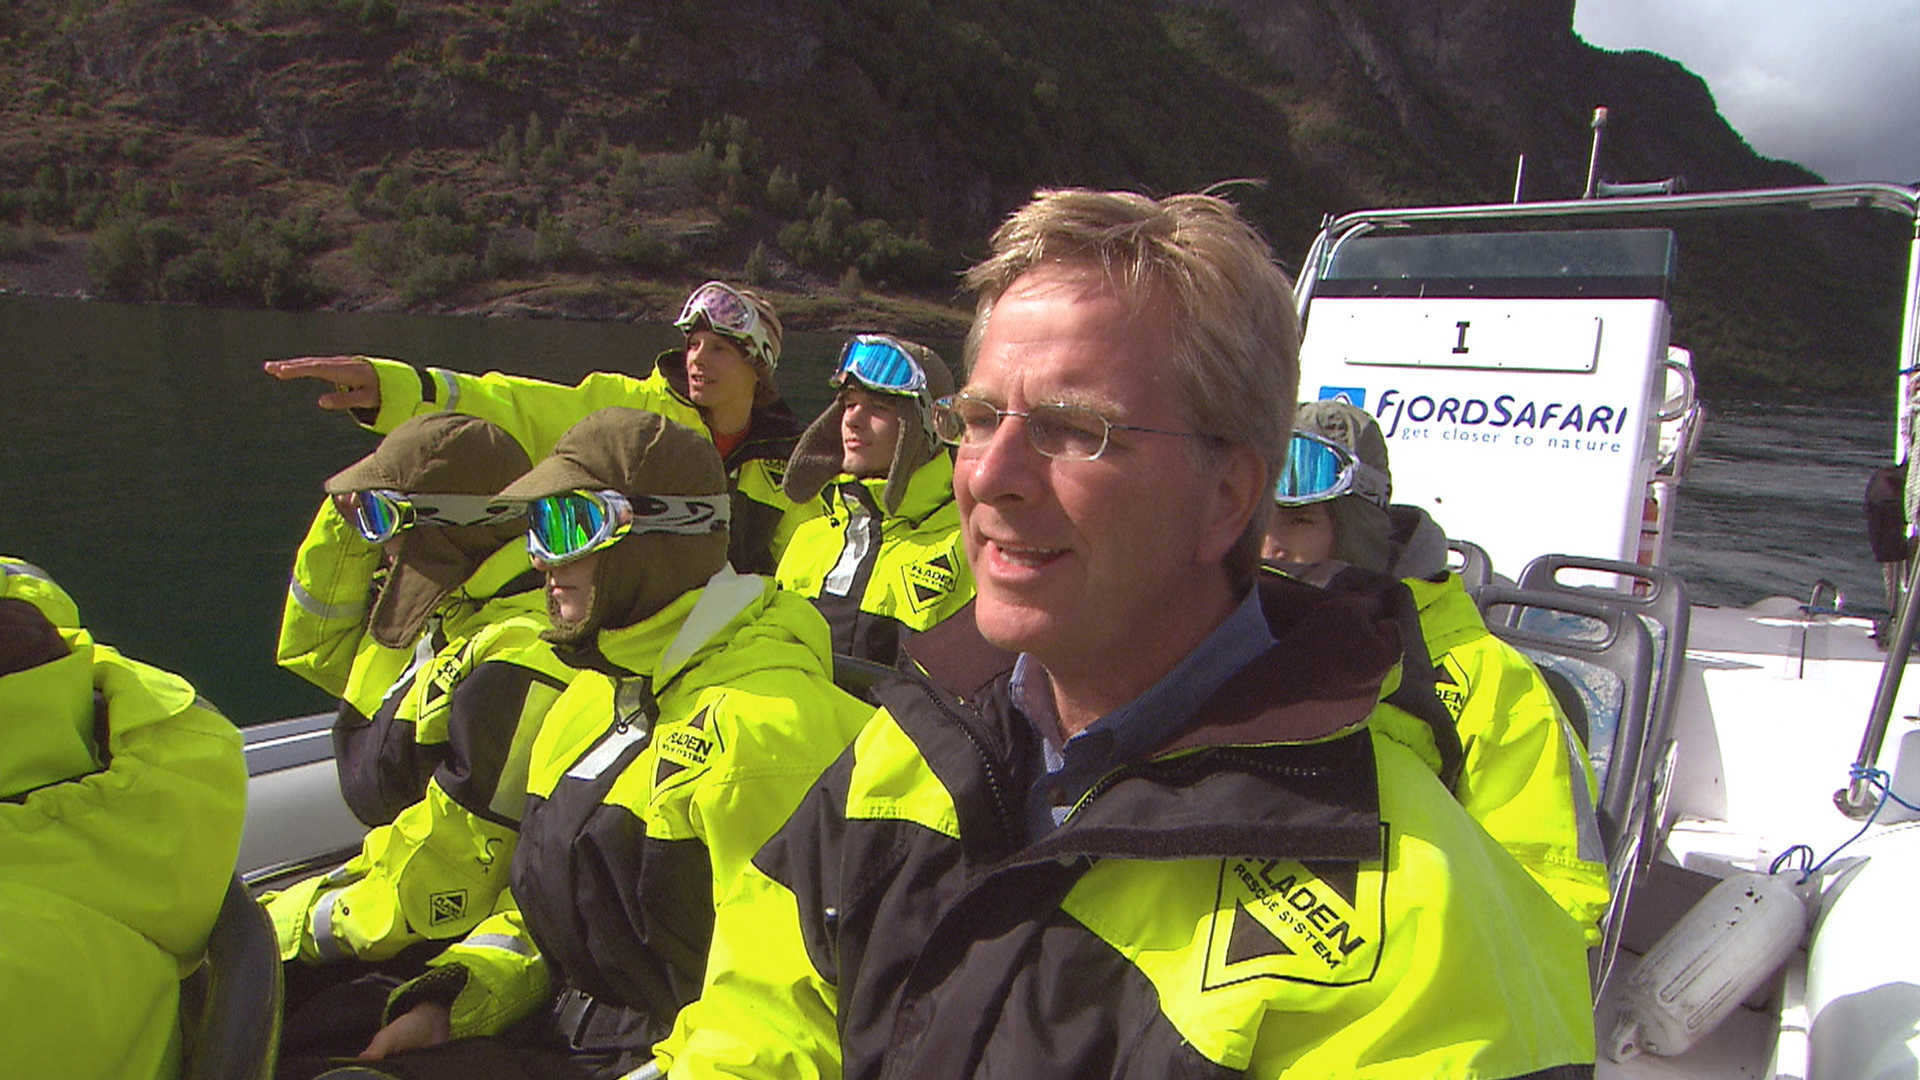 Rick Steves on safari in the fjords of Norway